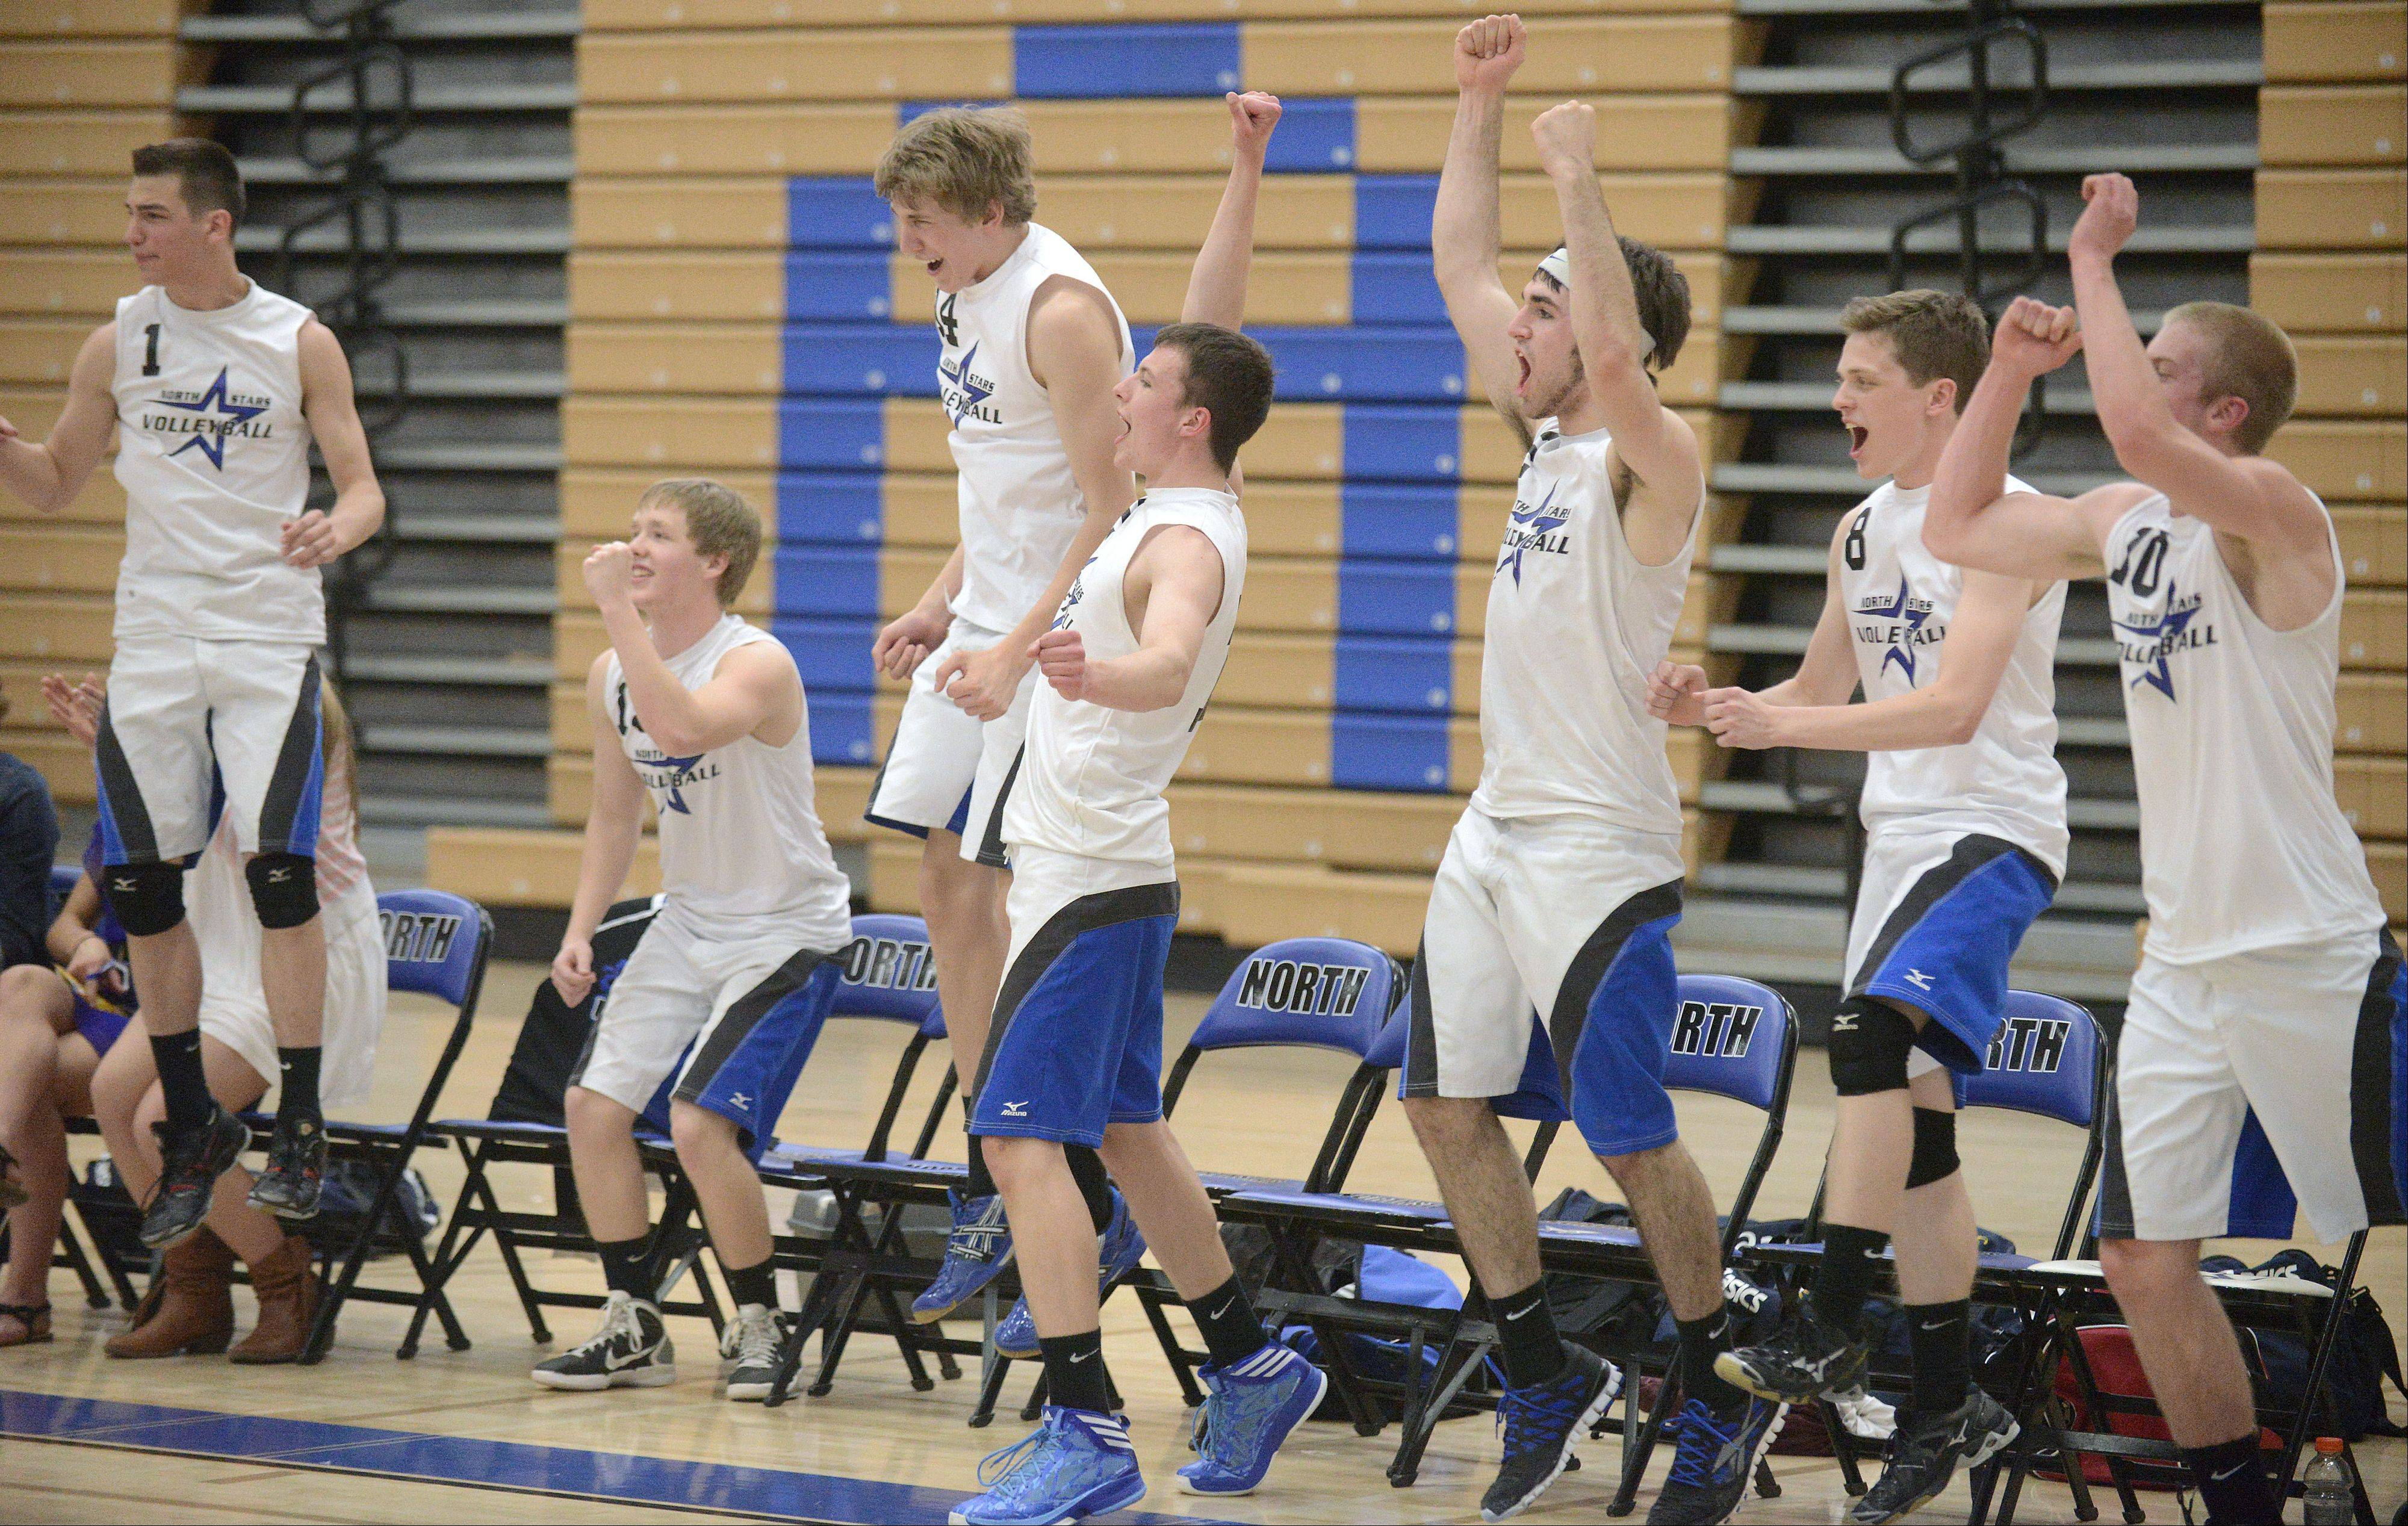 The St. Charles North bench erupts in celebration after scoring the winning point over Geneva in the second match on Tuesday, May 7.